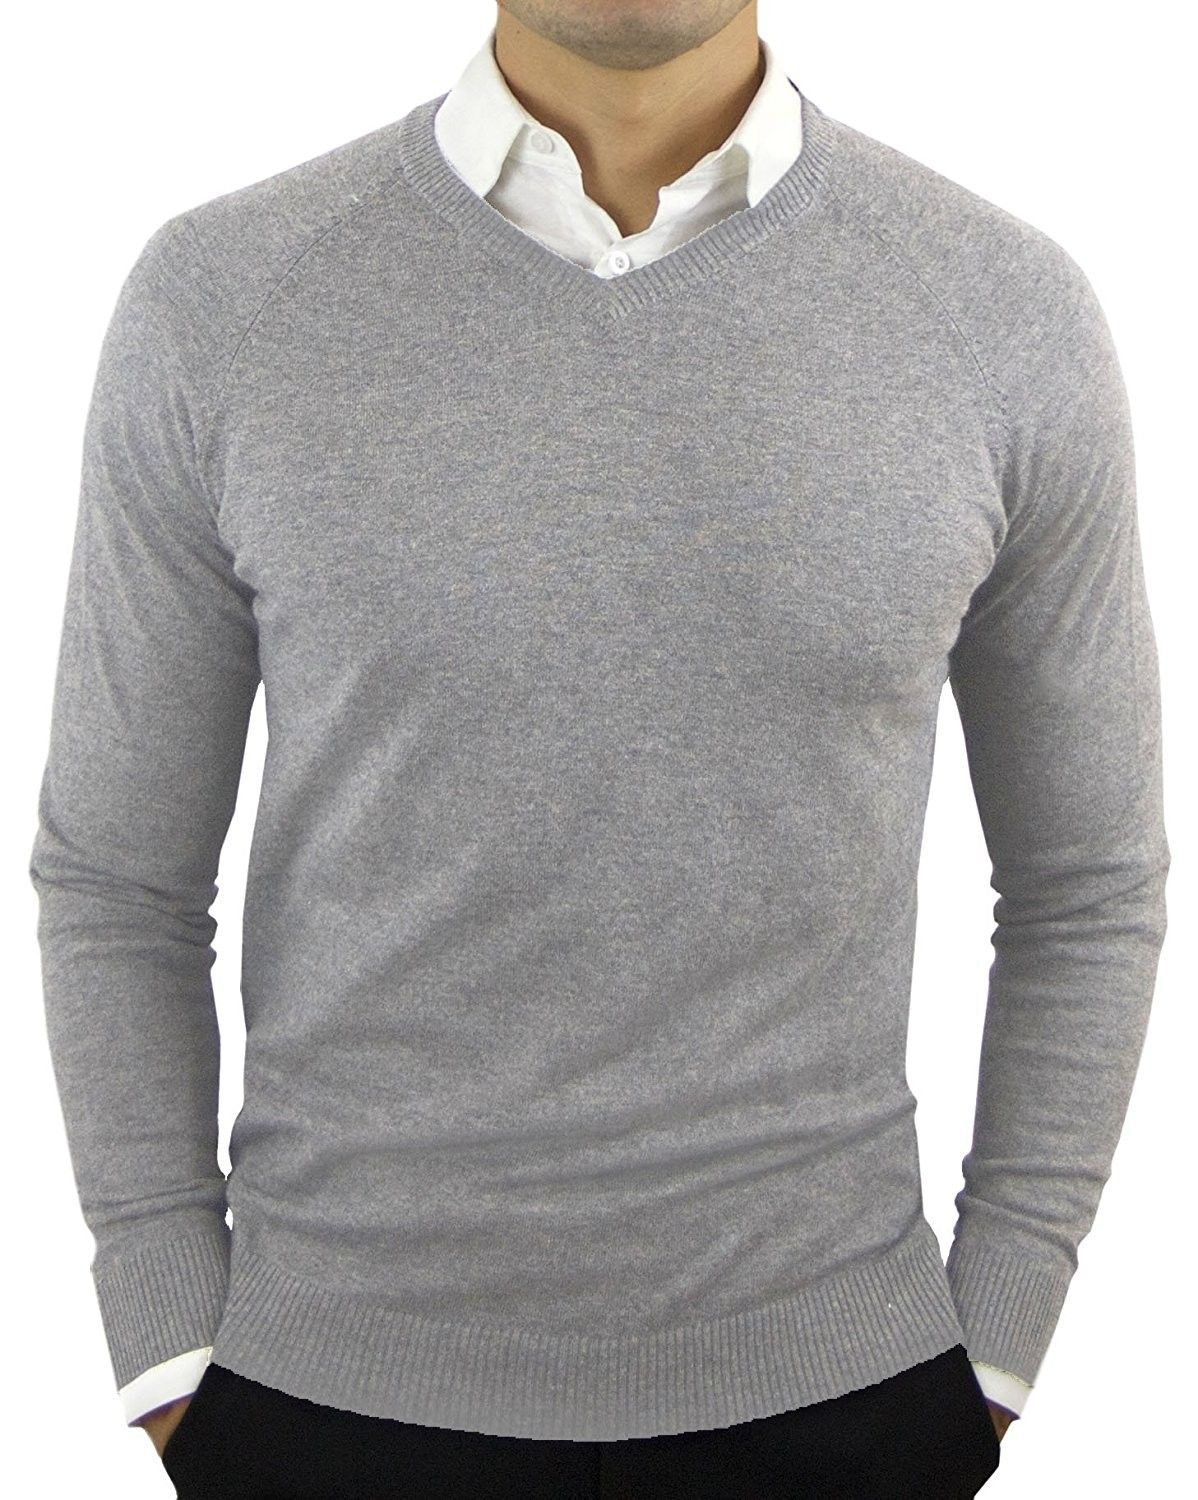 Men's Perfect Slim Fit V-Neck Sweater - Heather Gray - CX1281FHKBT | Sweater  outfits men, Pullover sweater men, Men sweater